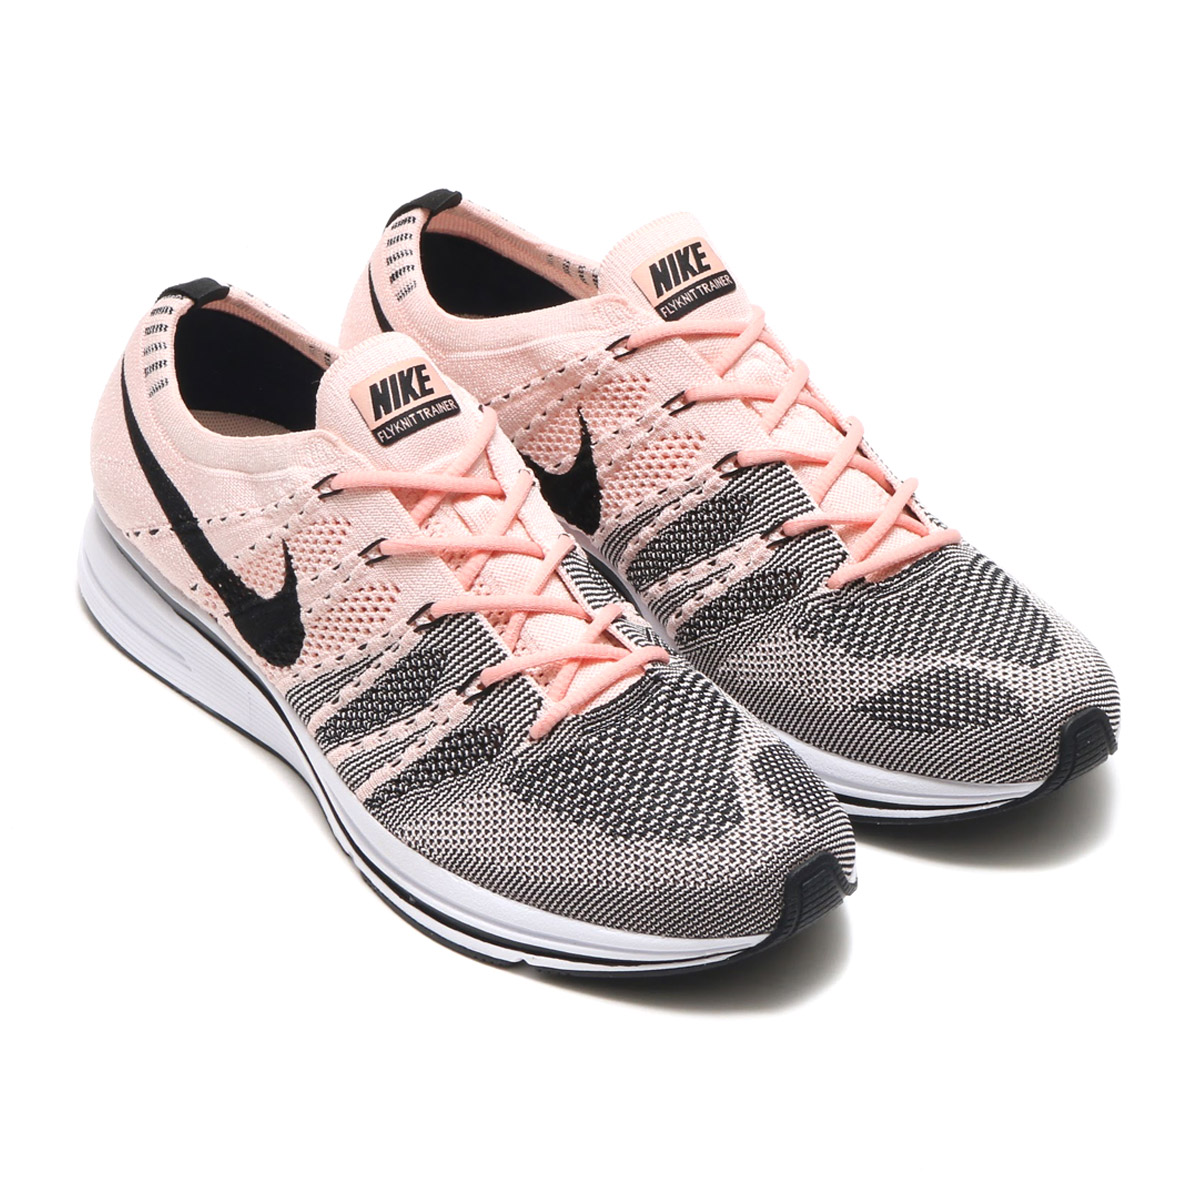 0a18b0b79ecb ... Nike fried food knit trainer featuring a soft color comes up. It is  easy to match the soft shade color of サンセットティント with any wearing. Flyknit  ...